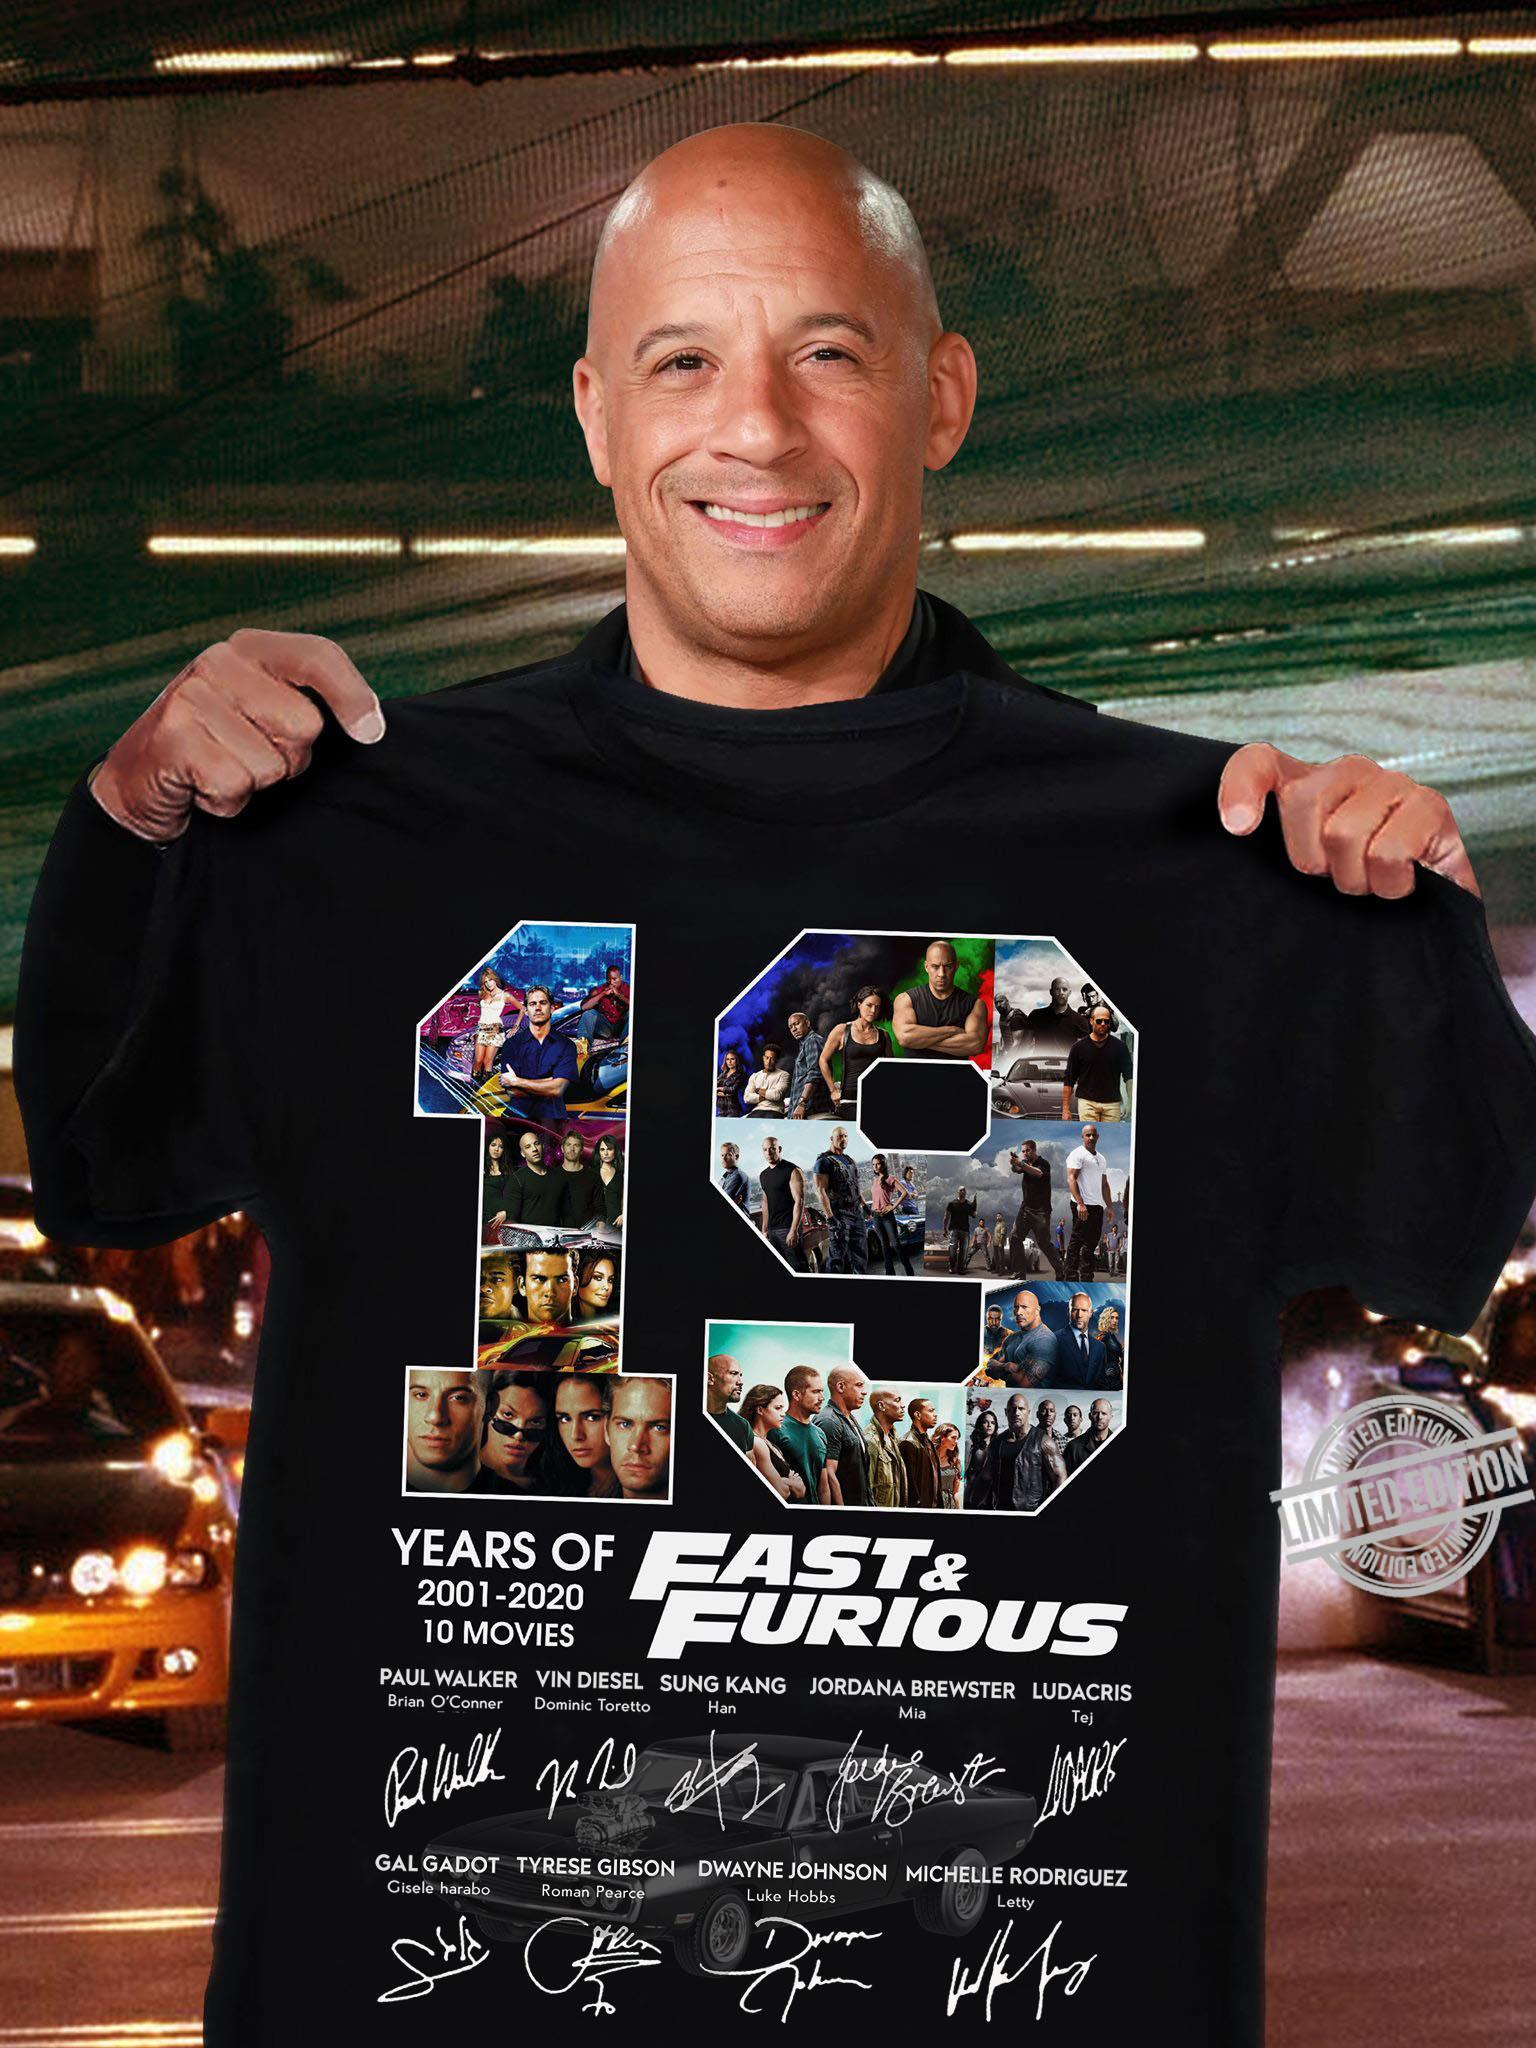 19 Years Of 2001-2020 10 Movies Fast & Furious Shirt